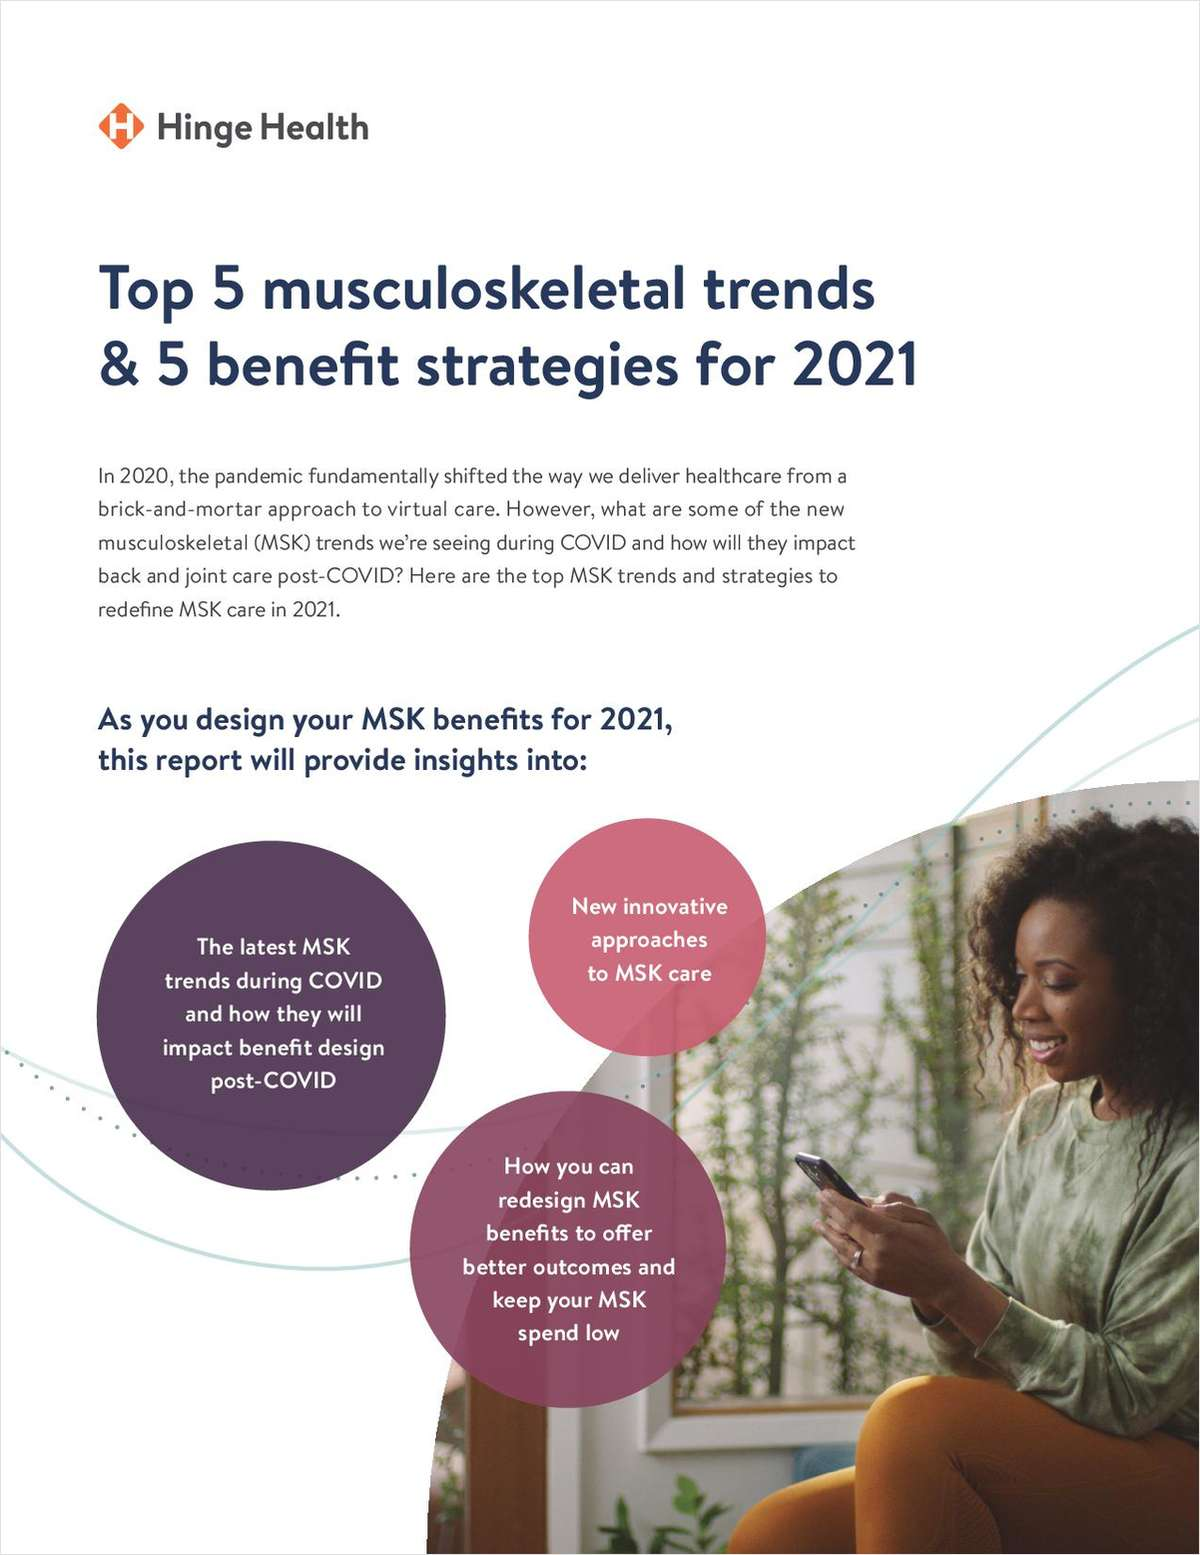 5 Musculoskeletal Trends & 5 Benefit Strategies for Your Company in 2021